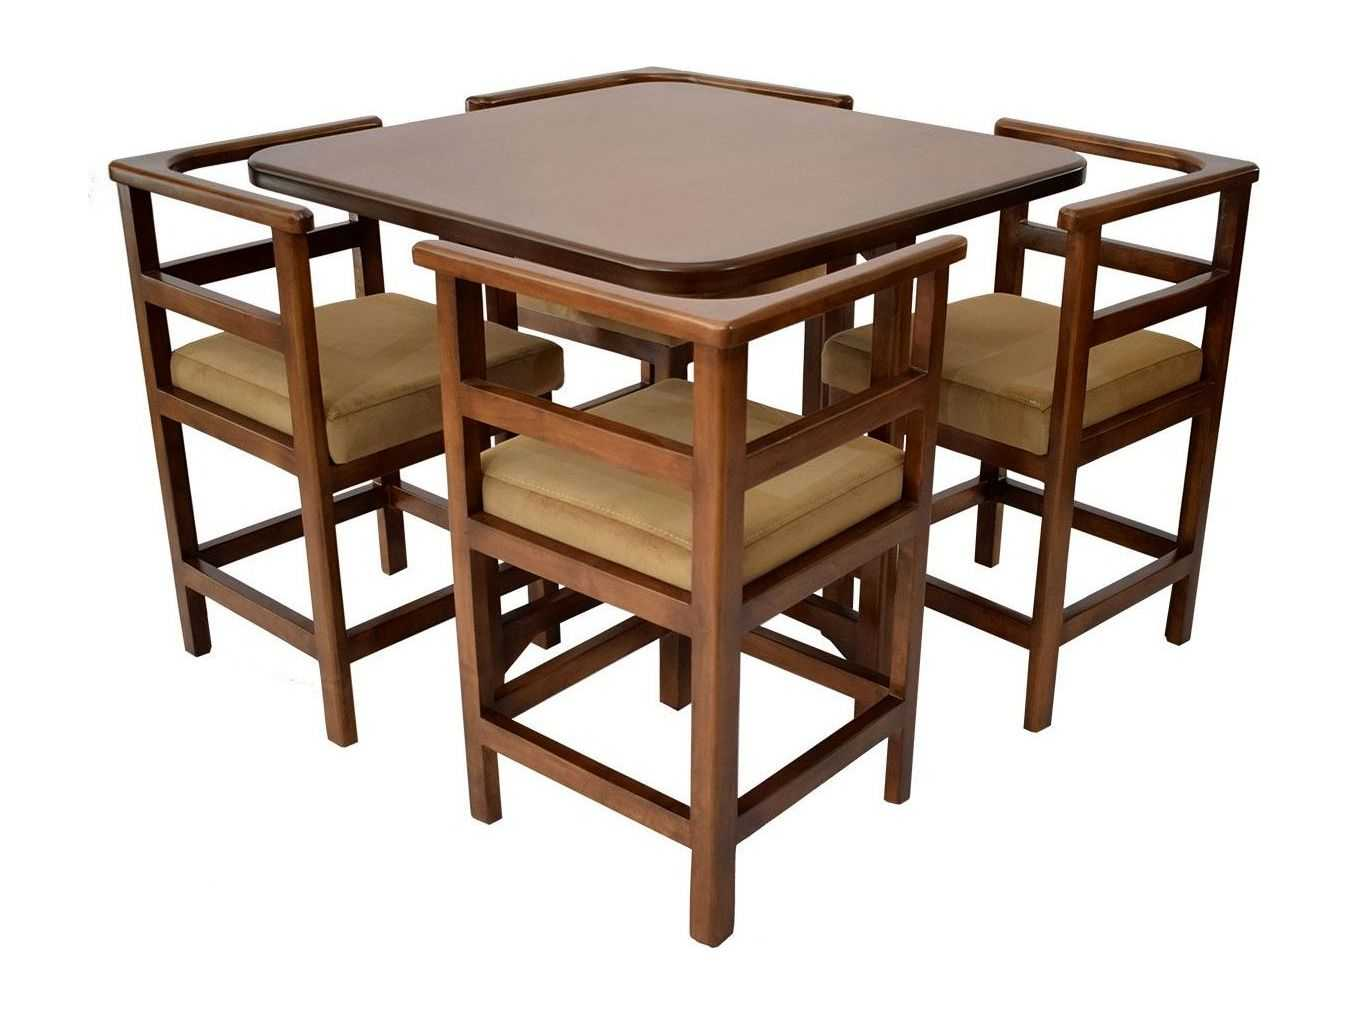 Dining table with little space 2 - میز ناهار خوری کمجا